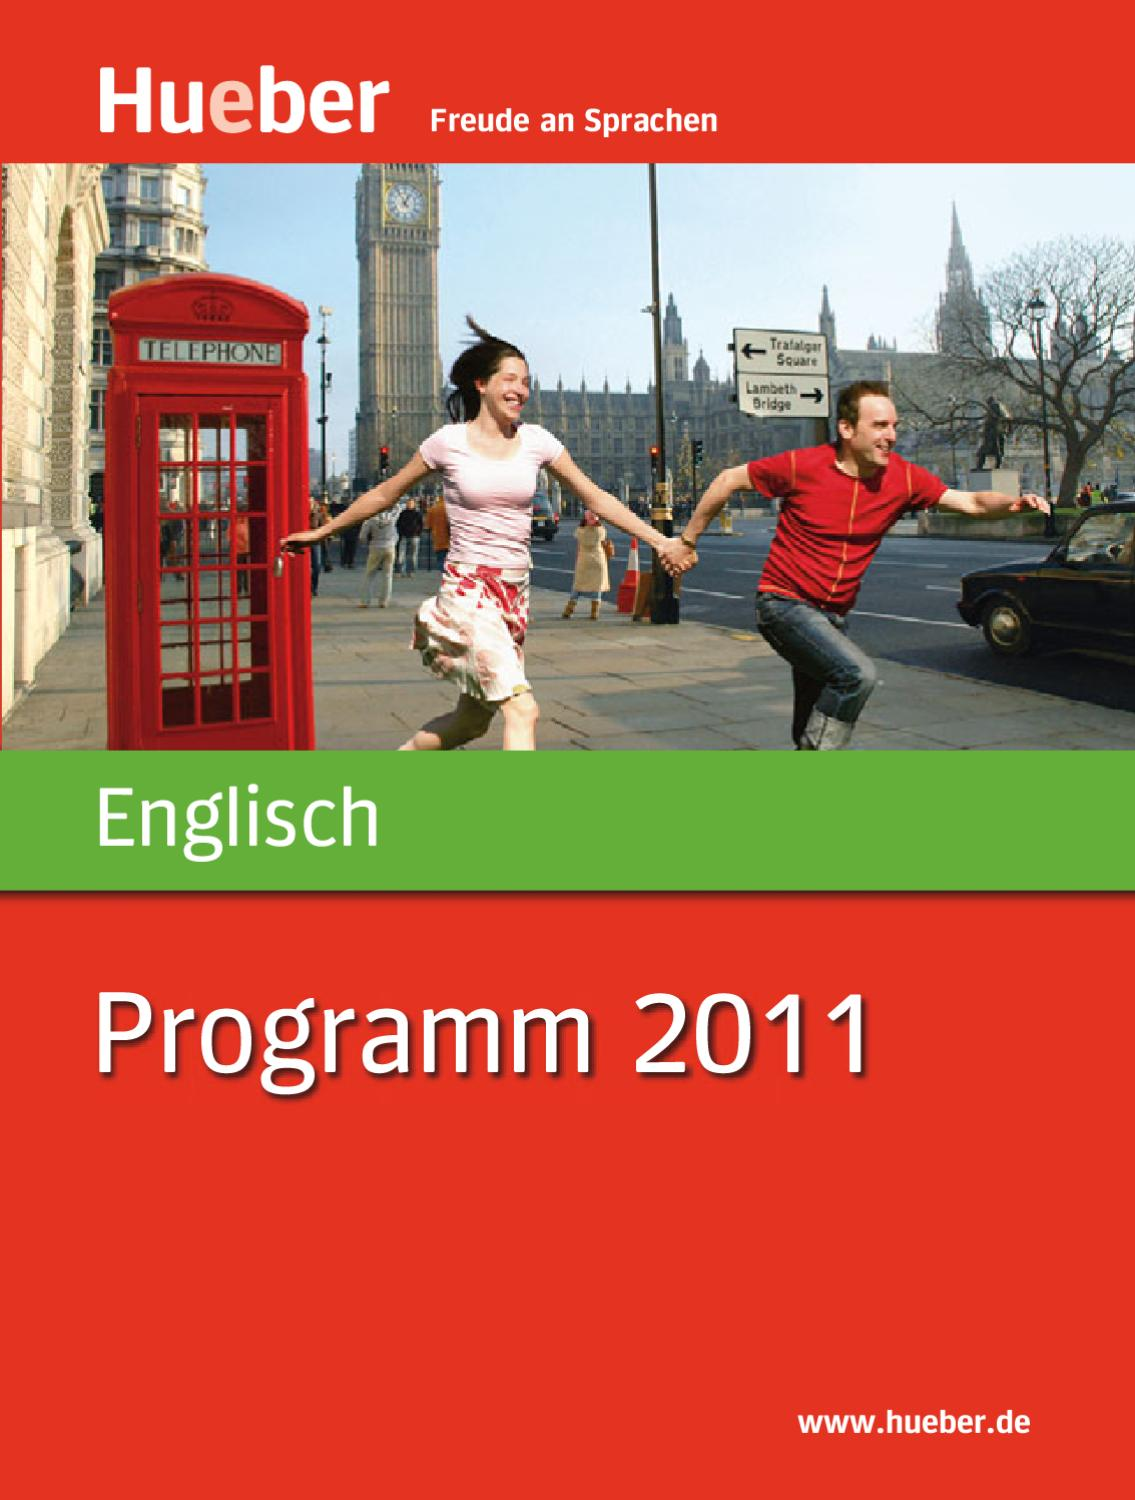 Hueber Catalogue 2011 by Macmillan Education - issuu